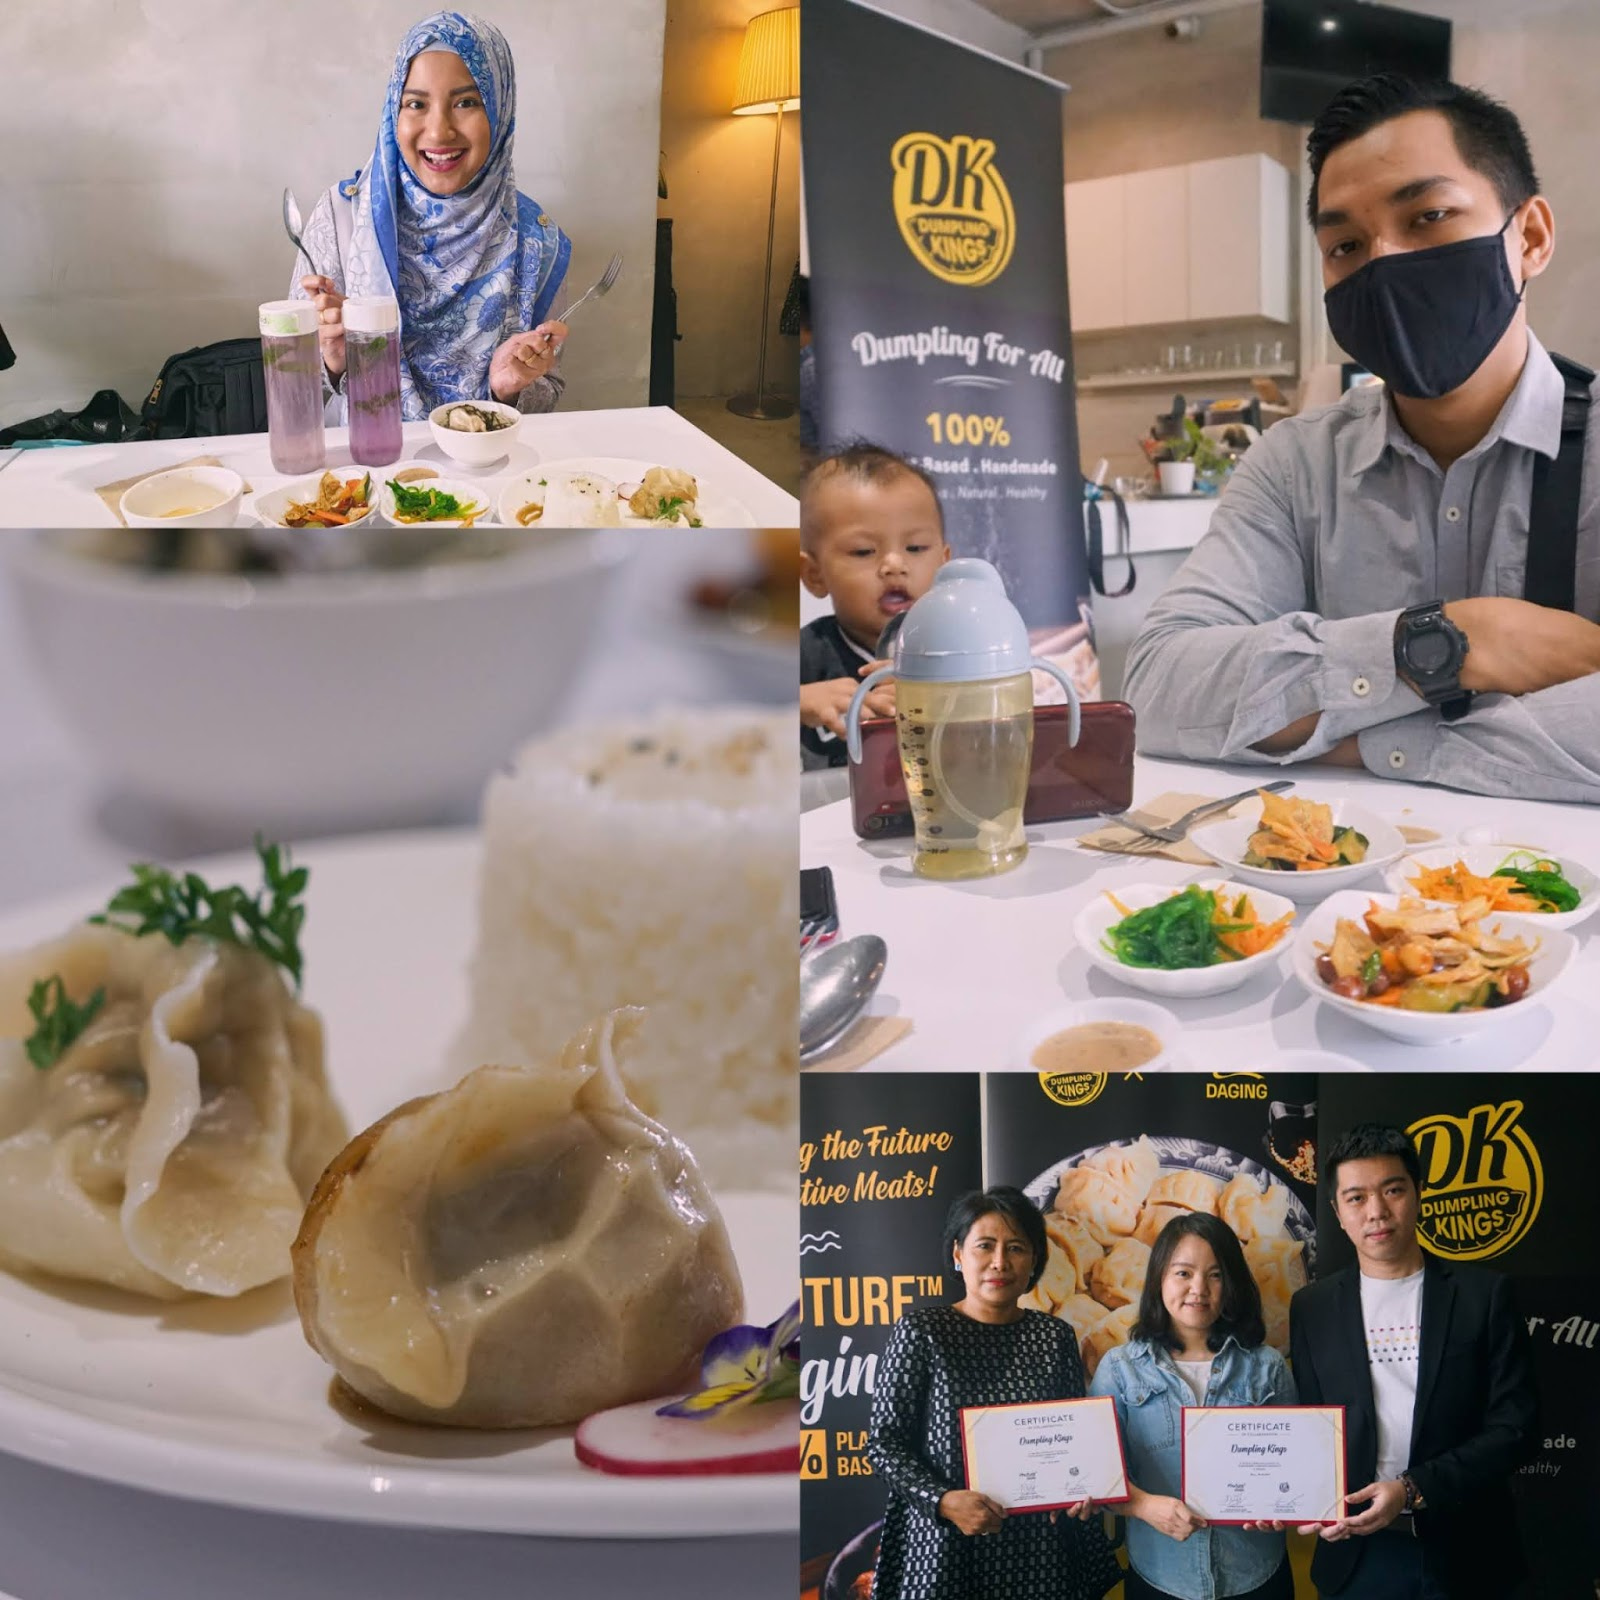 DUMPLING KINGS & PHUTURE DAGING - Hak Milik Ina Ainaa